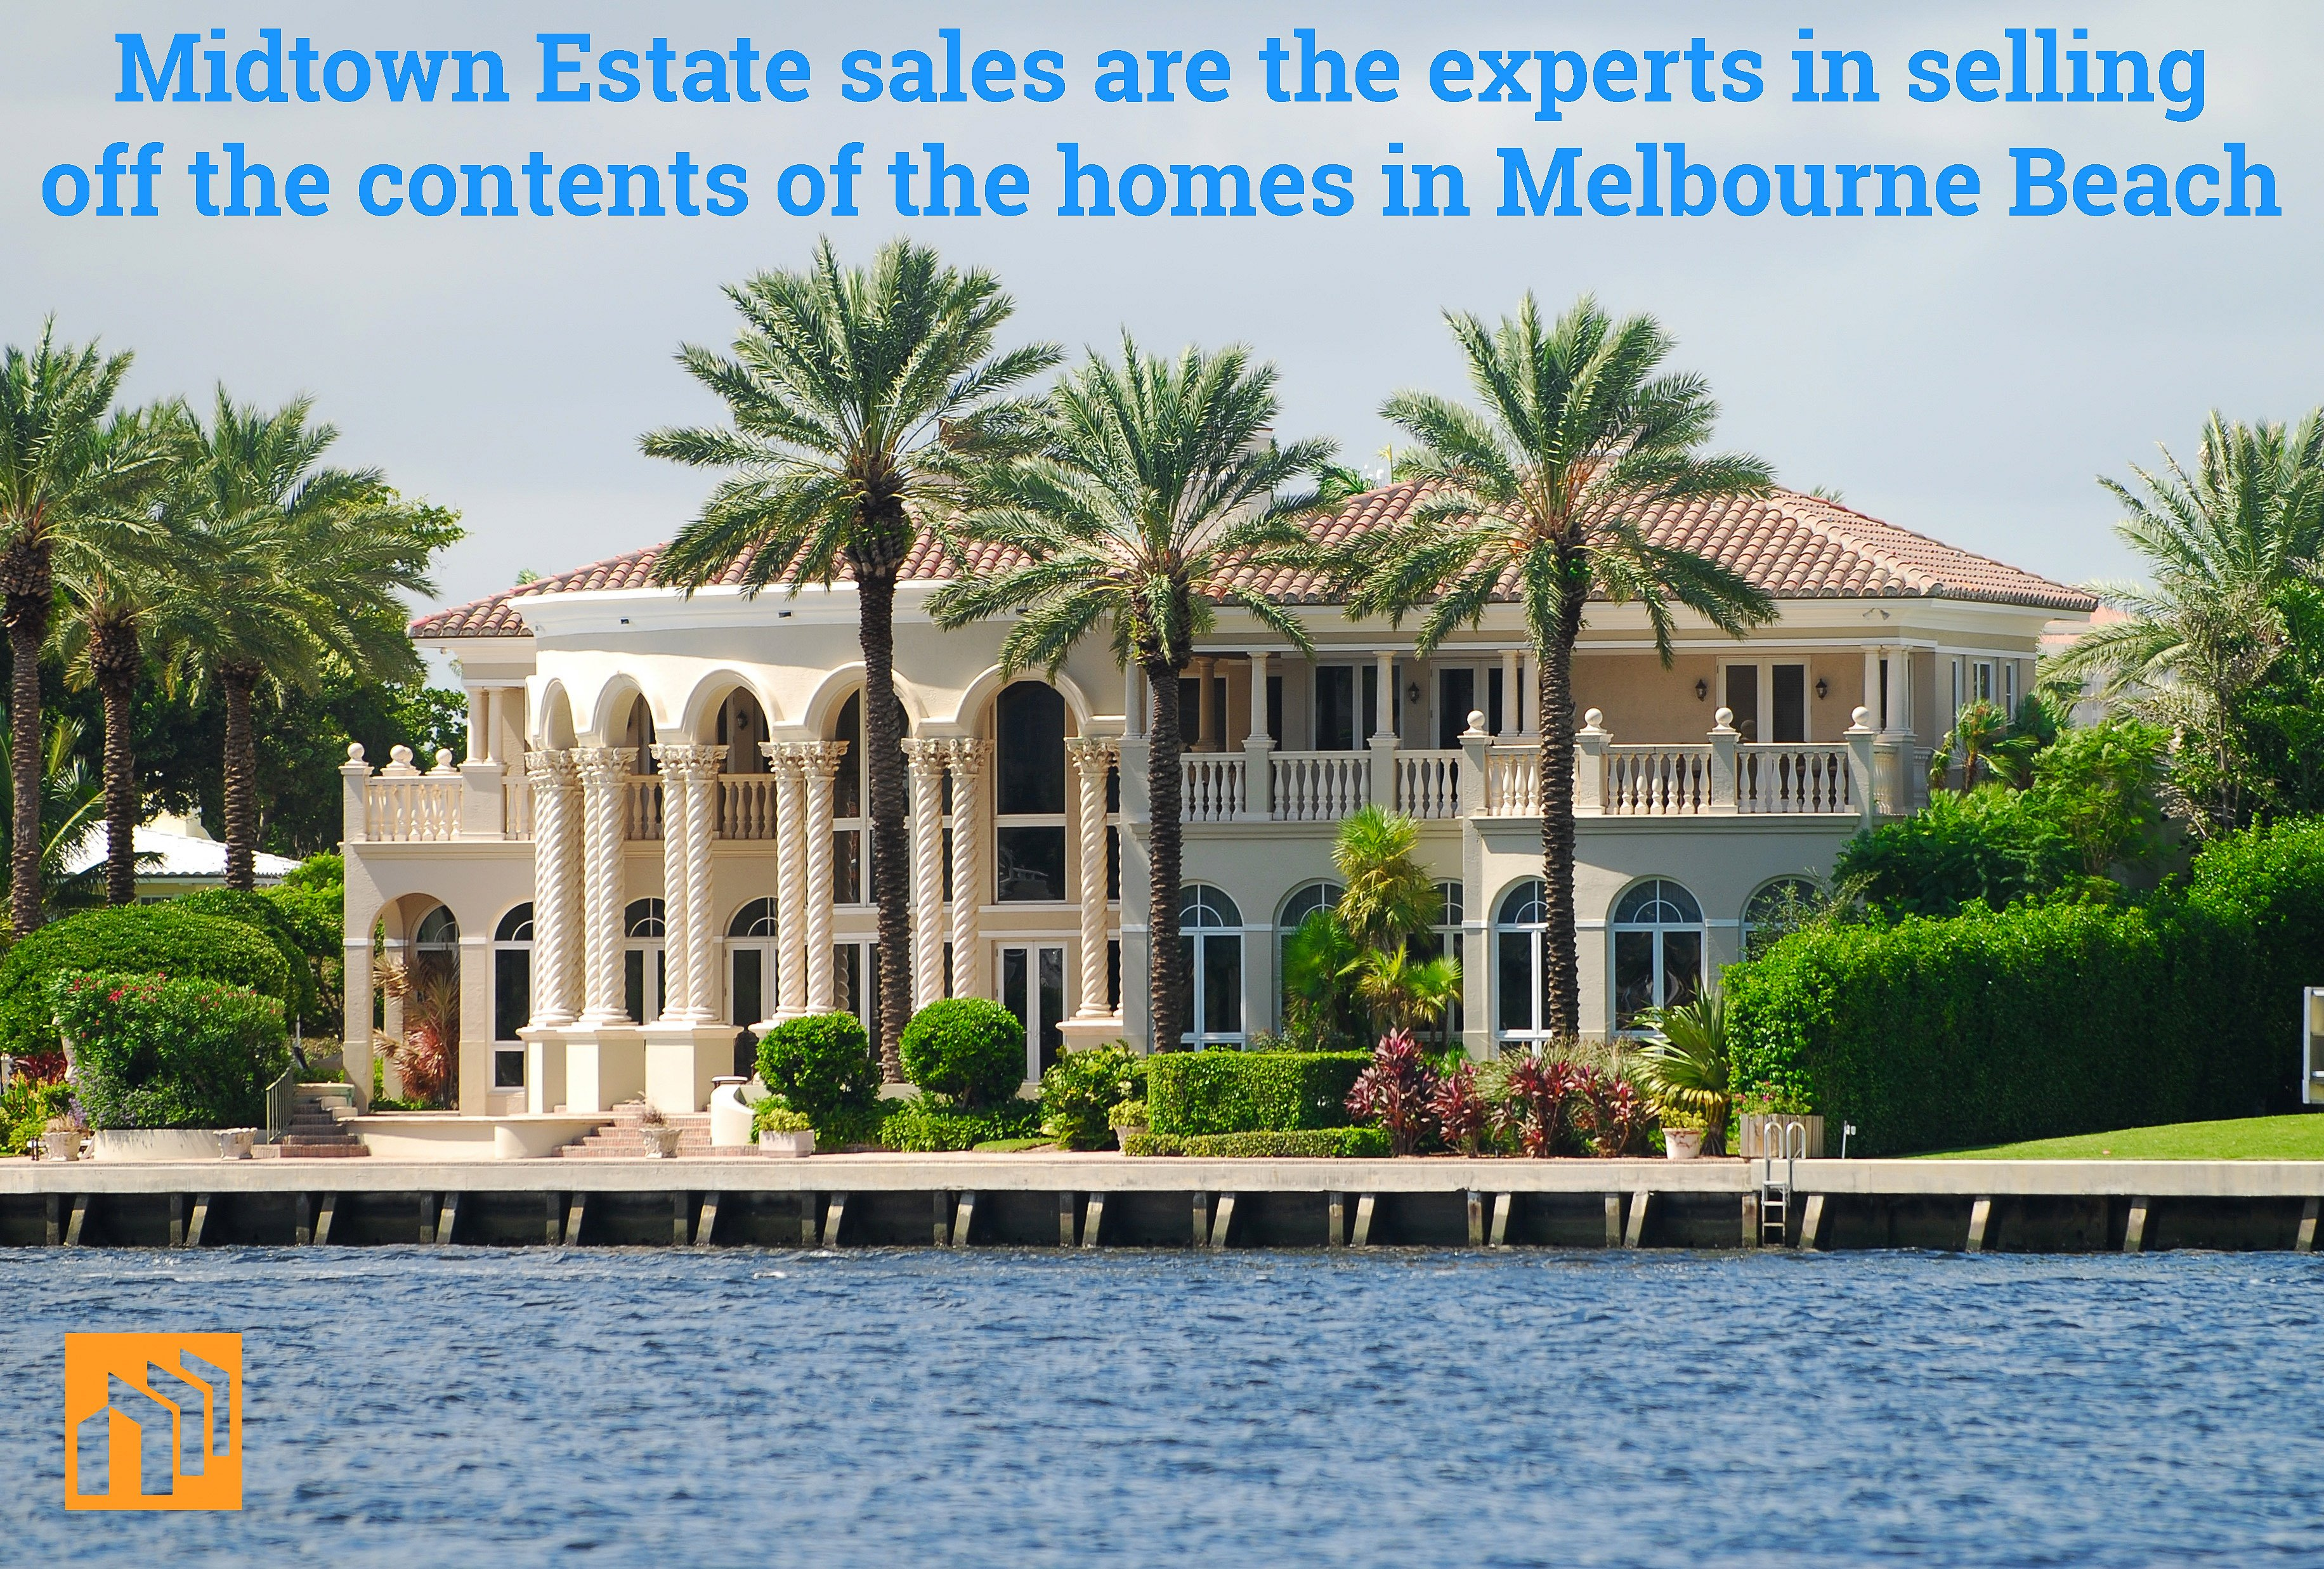 Beautiful Melbourne Beach waterfront mansion. Light peach colored (7) bedroom home that rests on the Indian River.